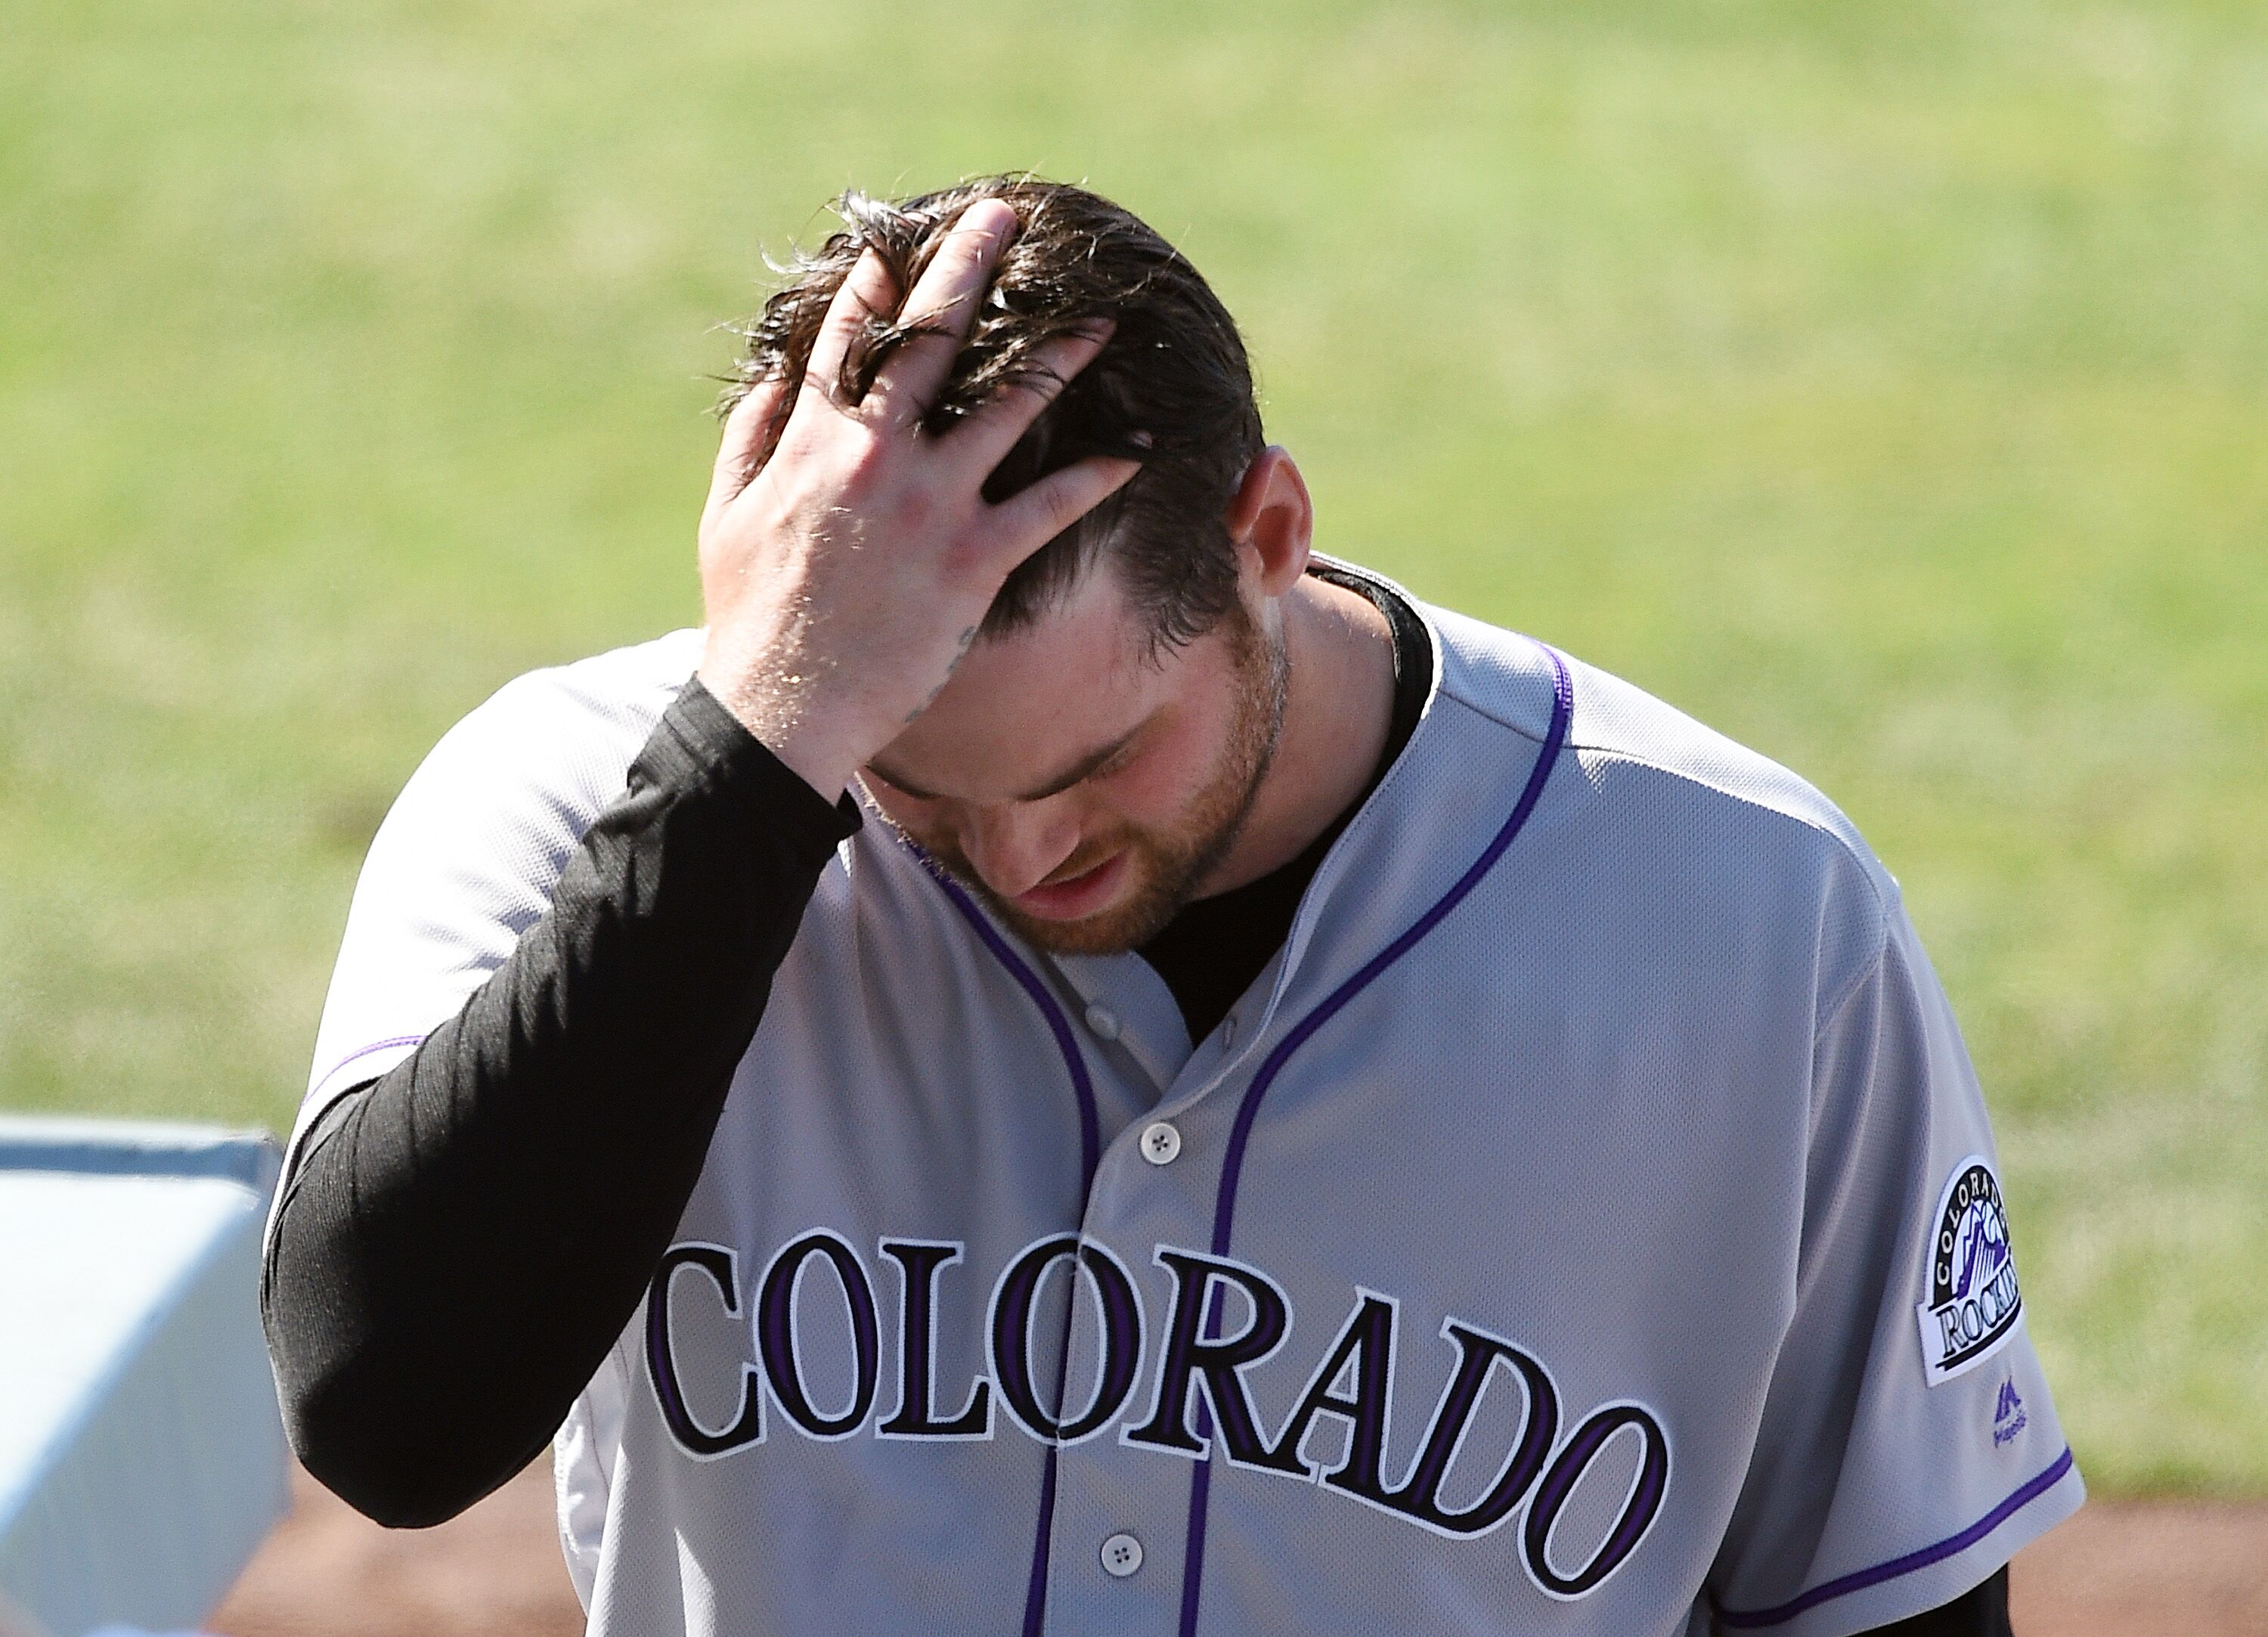 800867356-colorado-rockies-v-los-angeles-dodgers.jpg